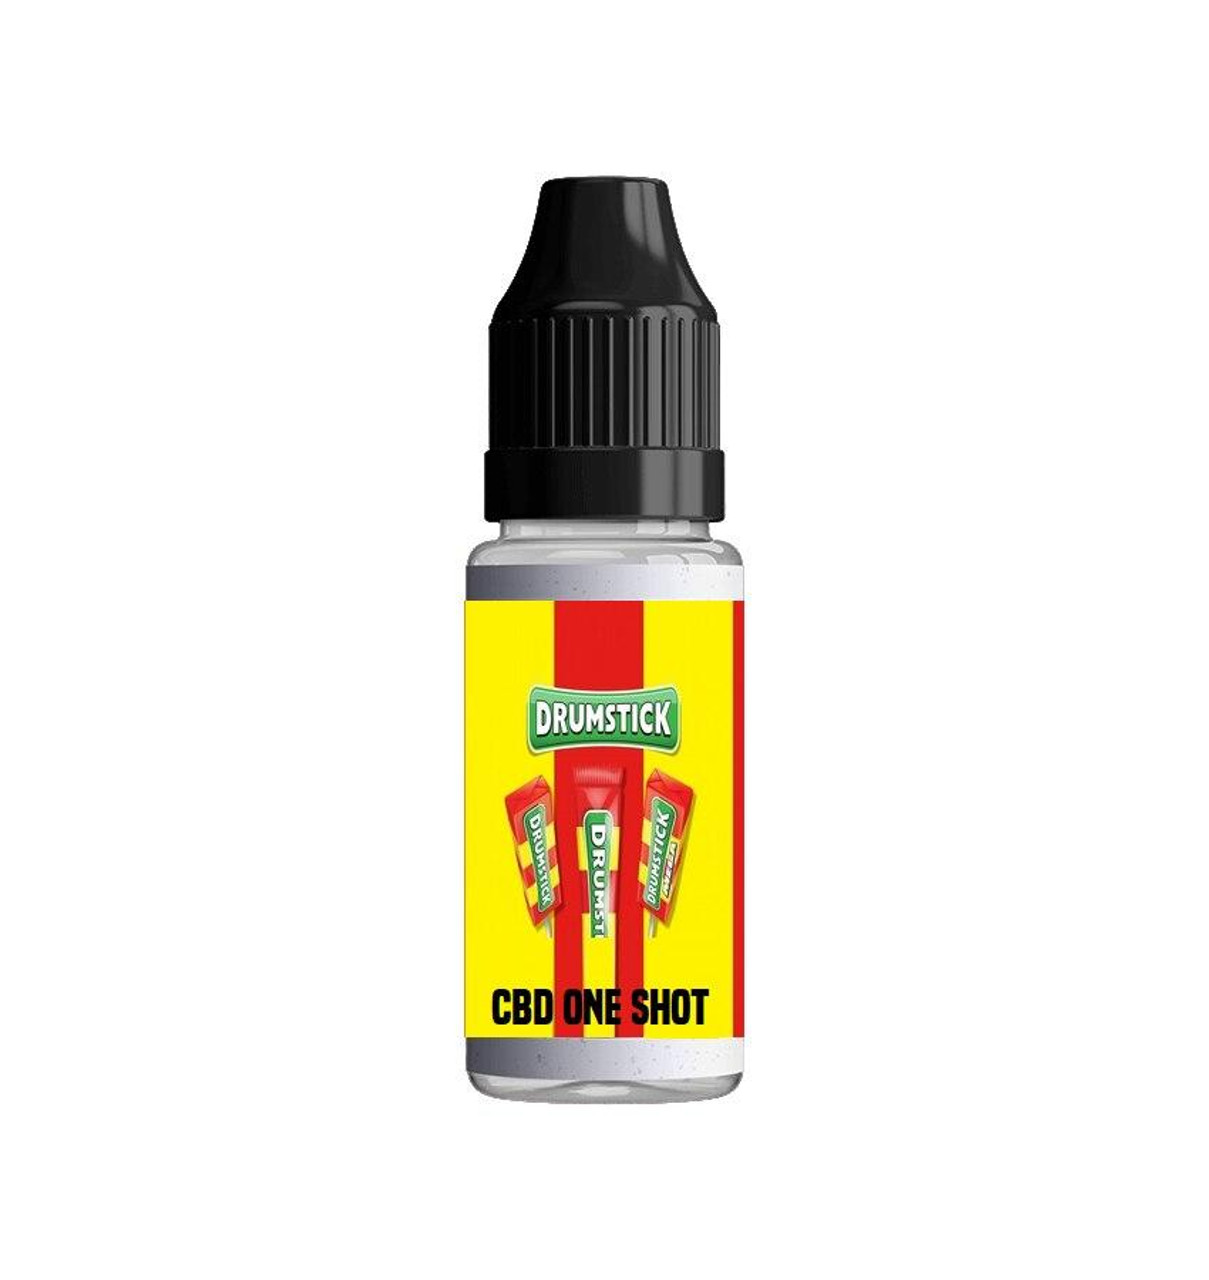 CBD One Shot Flavours DRUMSTICK LOLLY CBD ONE SHOT